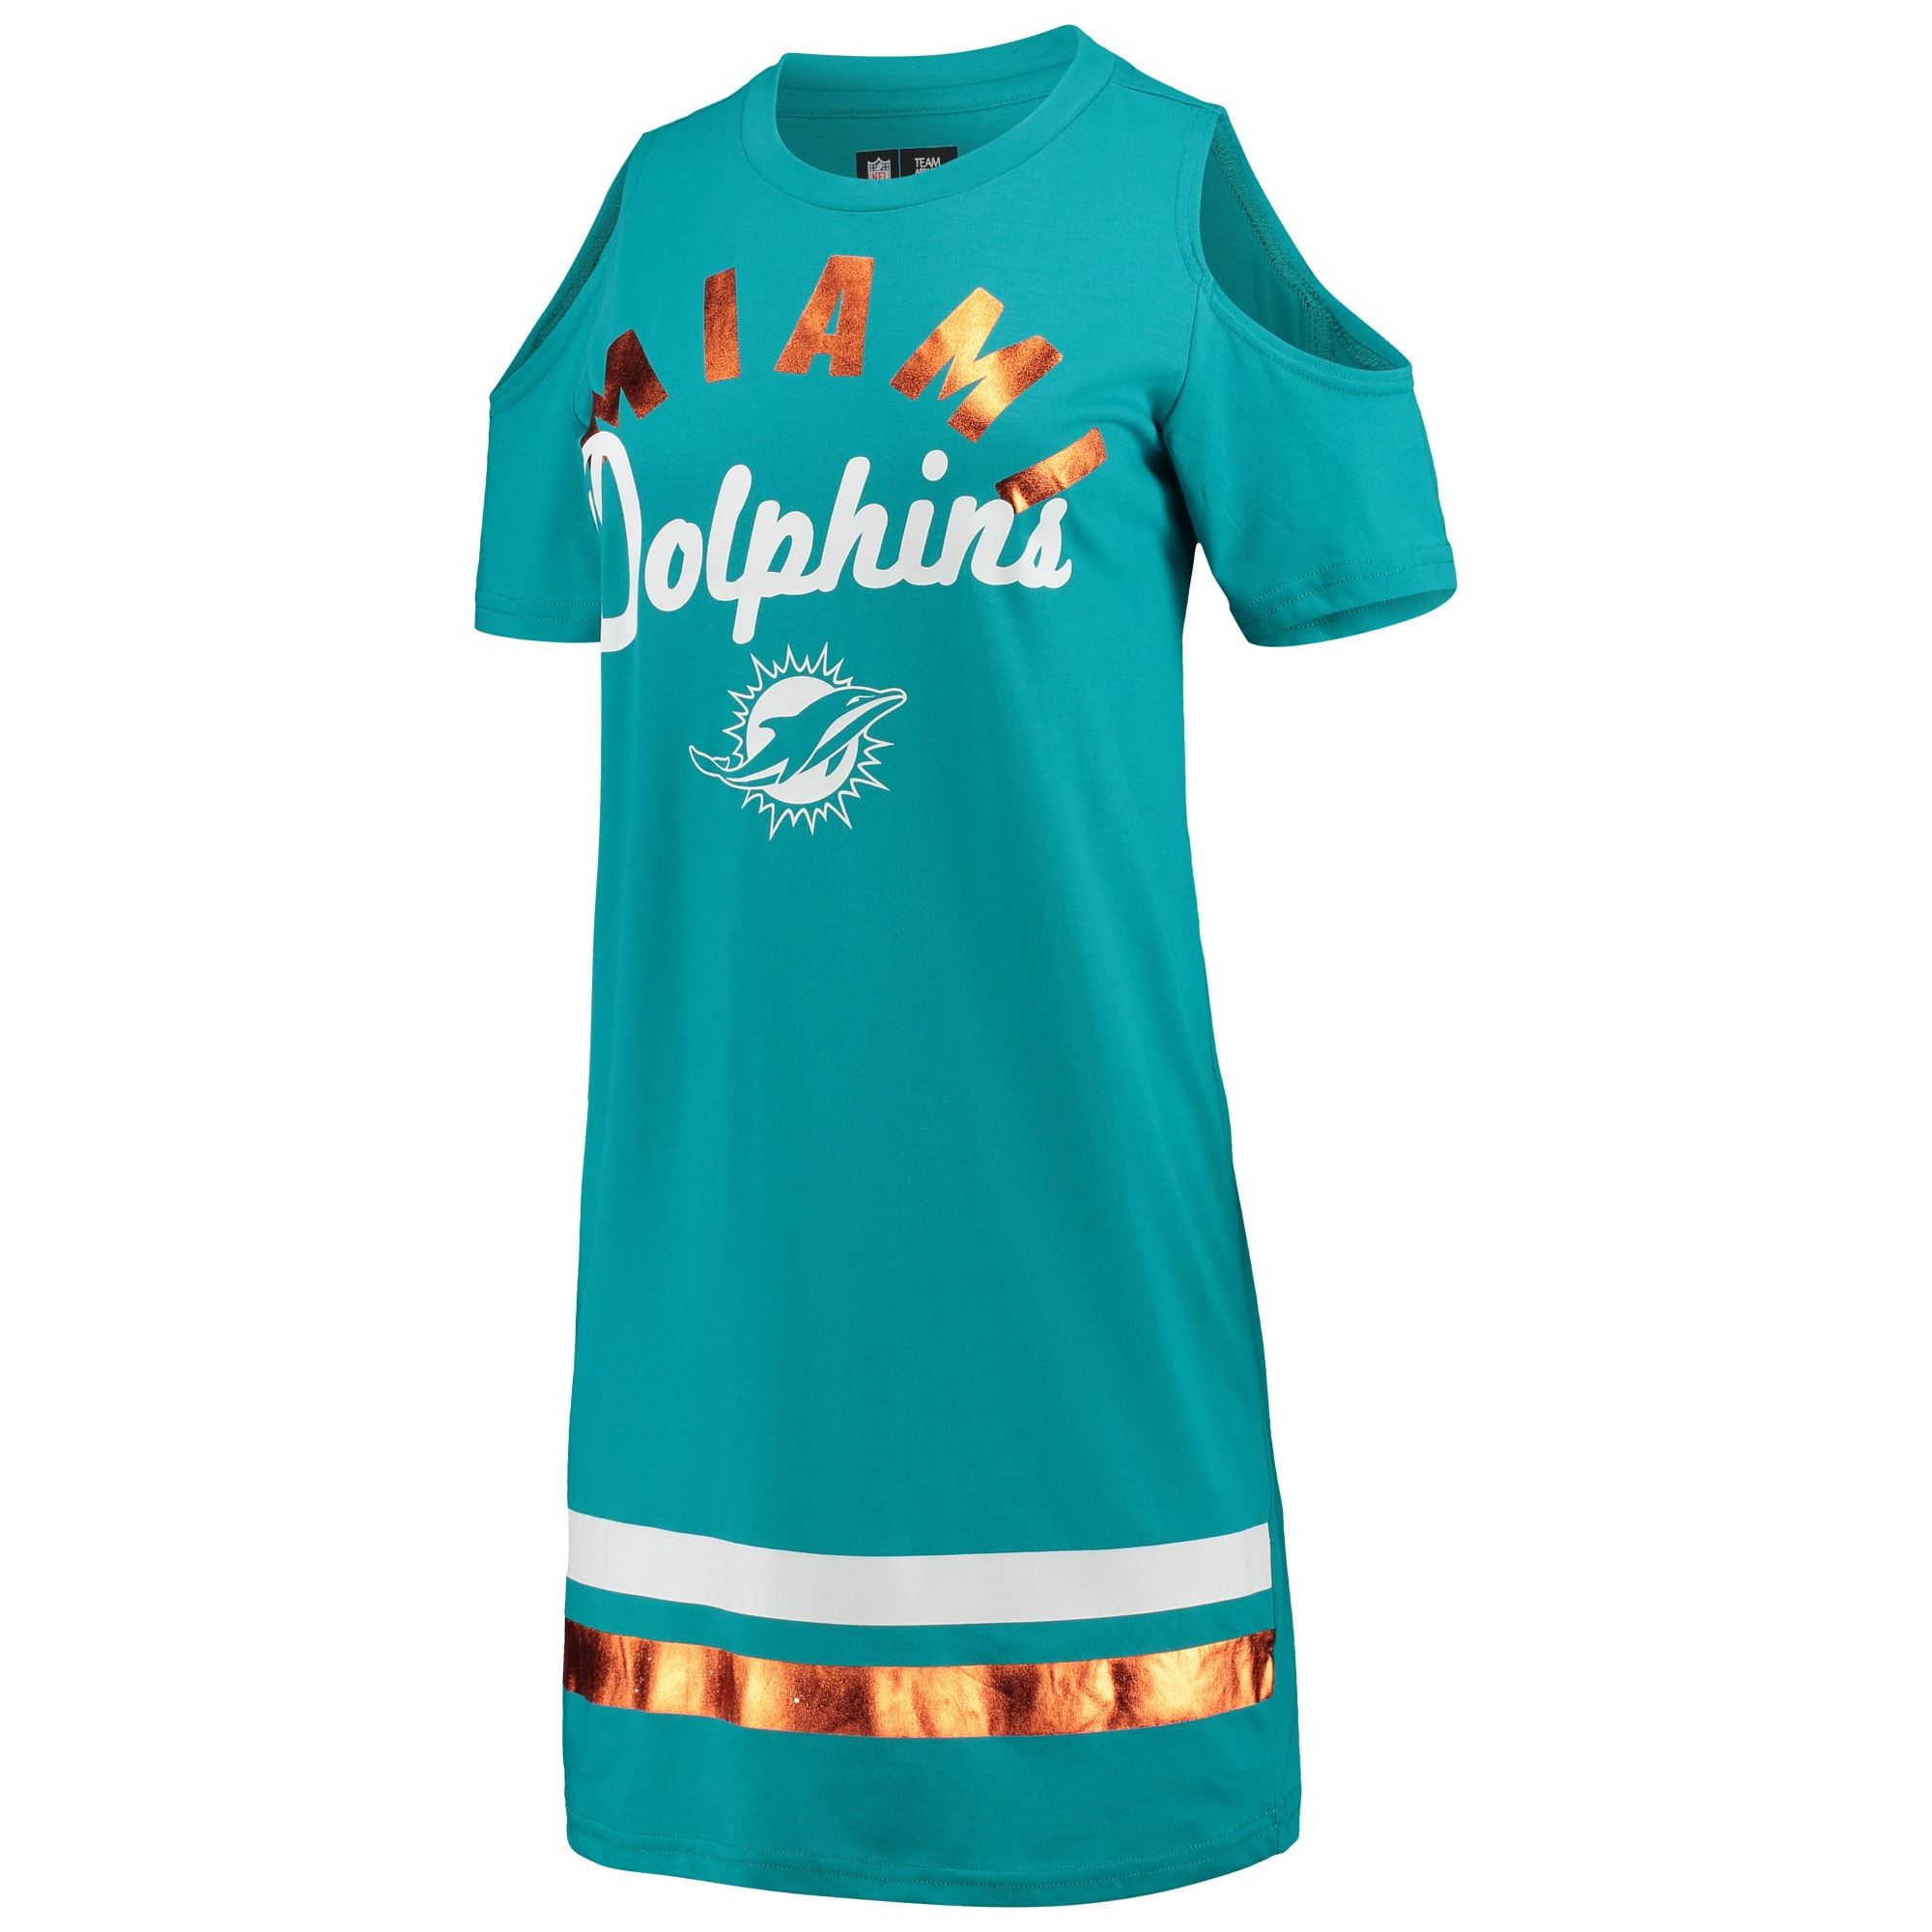 Miami Dolphins G-III 4Her by Carl Banks Women's Go Get Em Tri-Blend Cold Shoulder Mini-Dress - Aqua